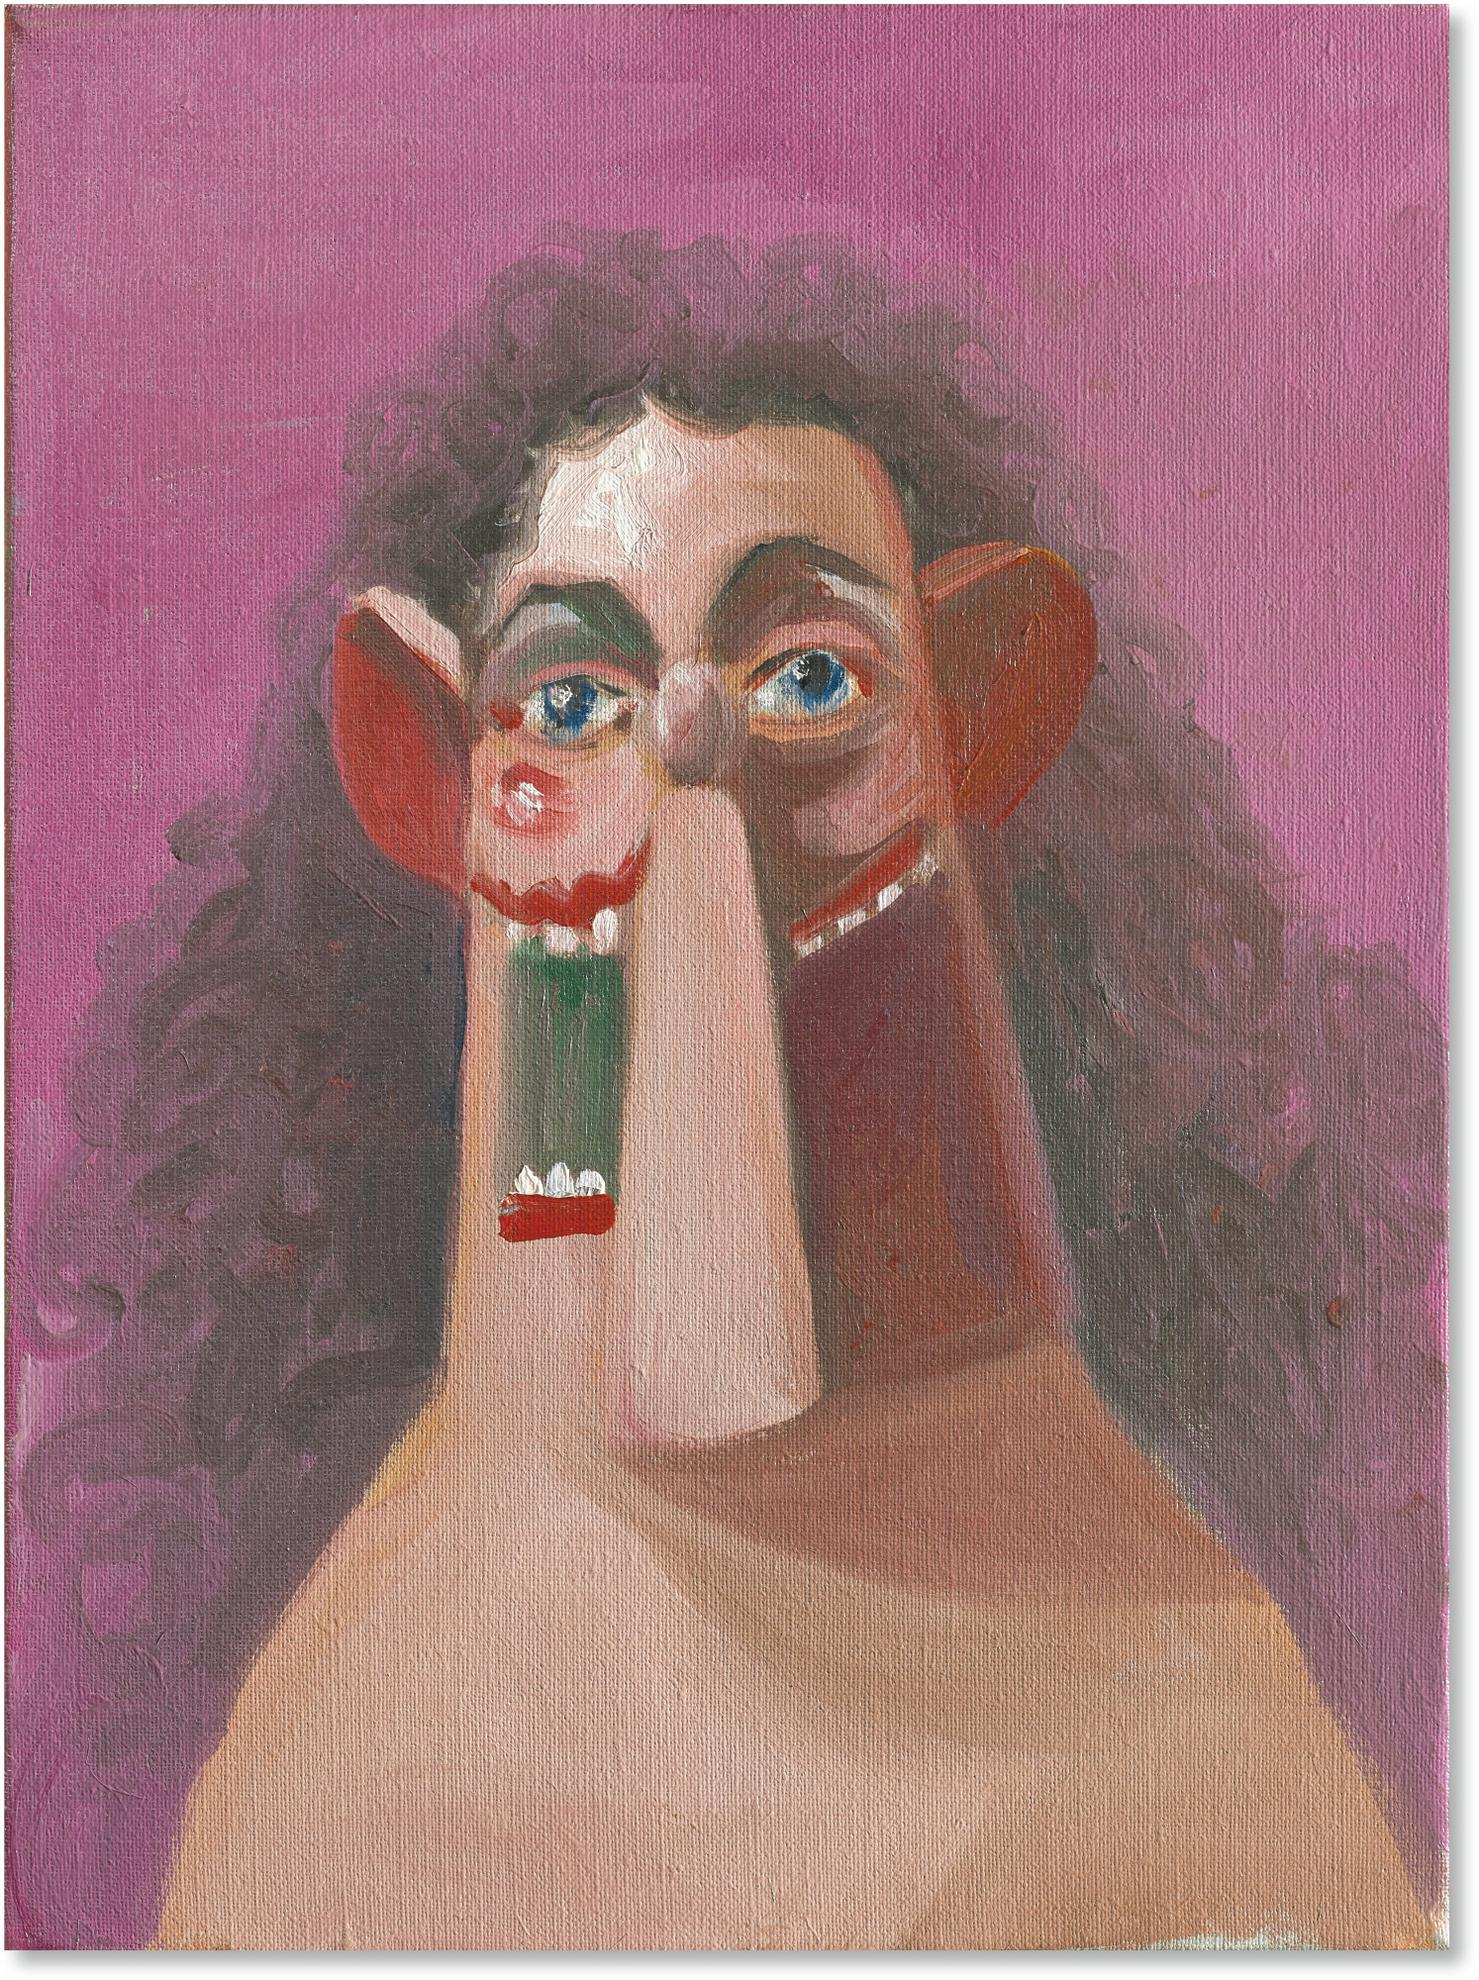 George Condo-Young Girl-2007